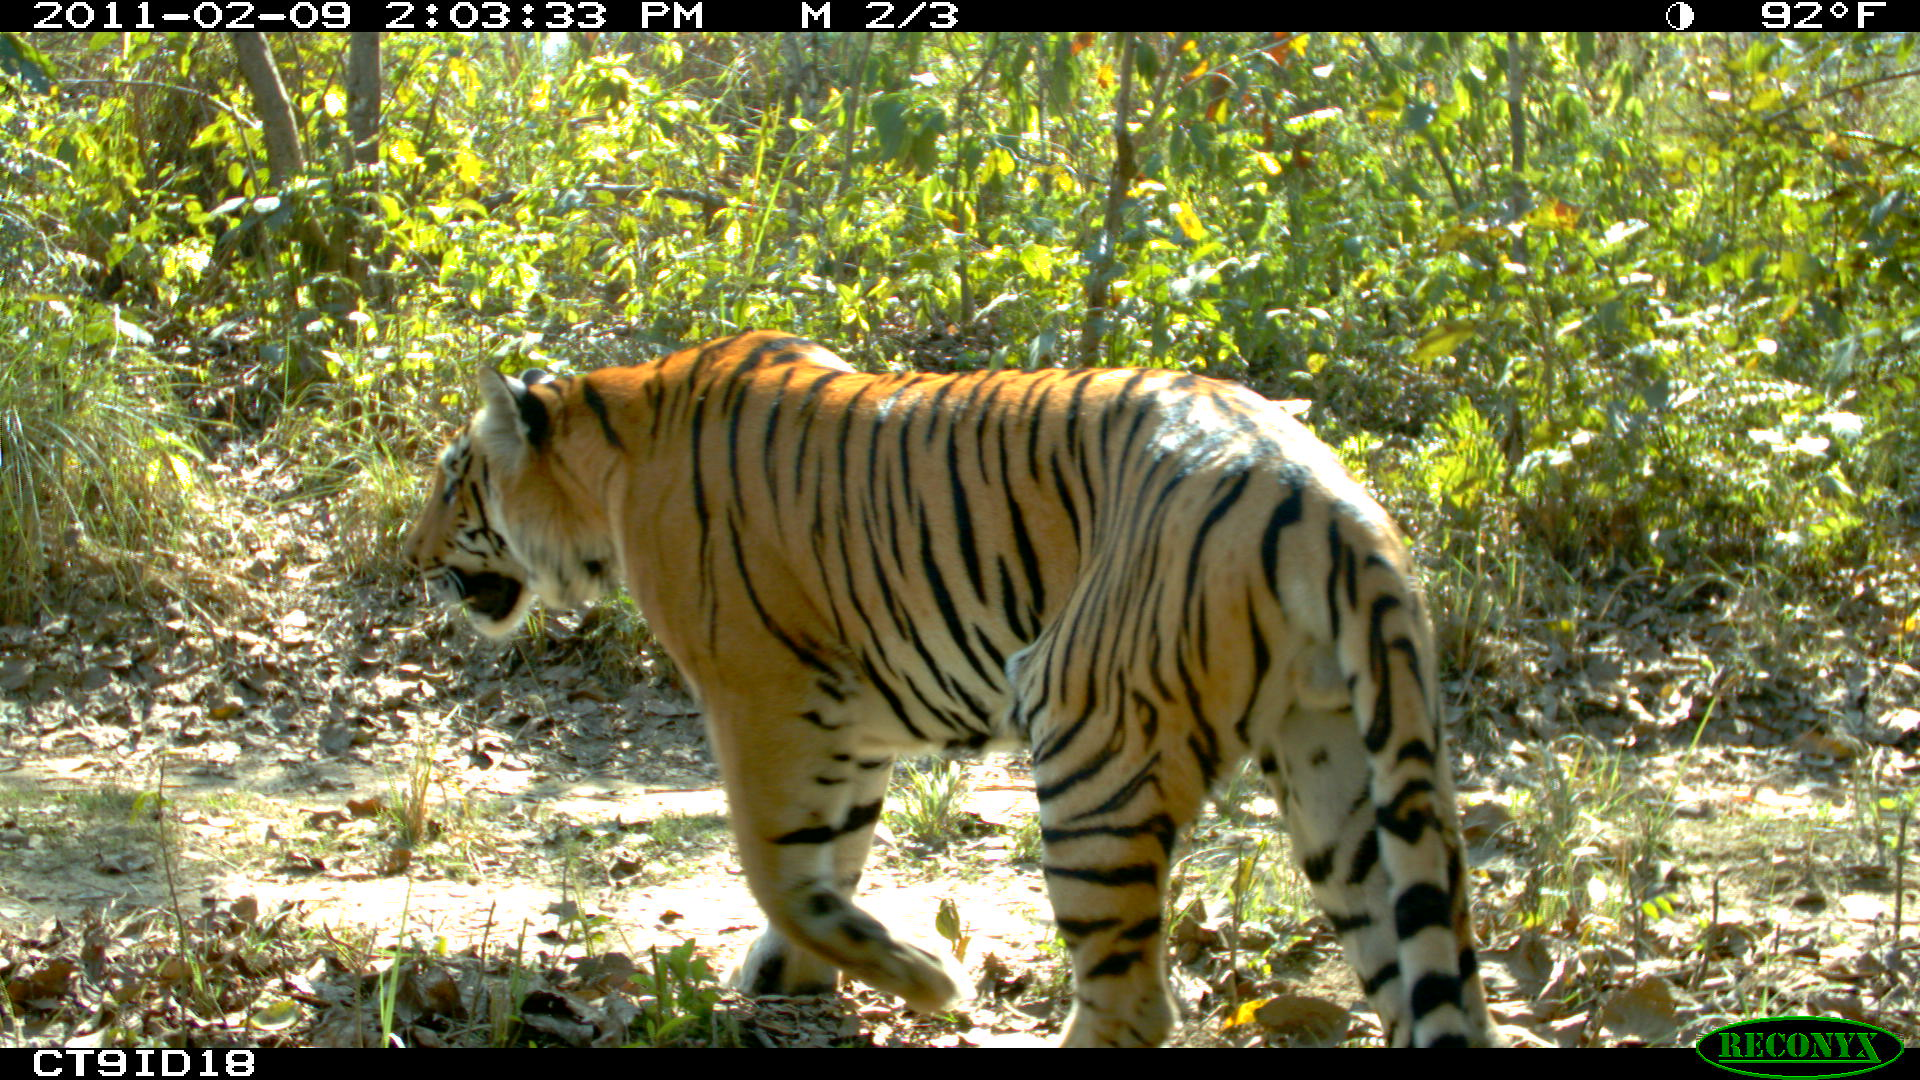 An adult male tiger in Nepal's Chitwan National Park. Nepal's East-West Highway, currently mostly a single lane in each direction, runs adjacent to the park. There are plans to add an additional lane in each direction and to build a railway nearby, which could impact tiger habitat connectivity. Image credit: Neil Carter